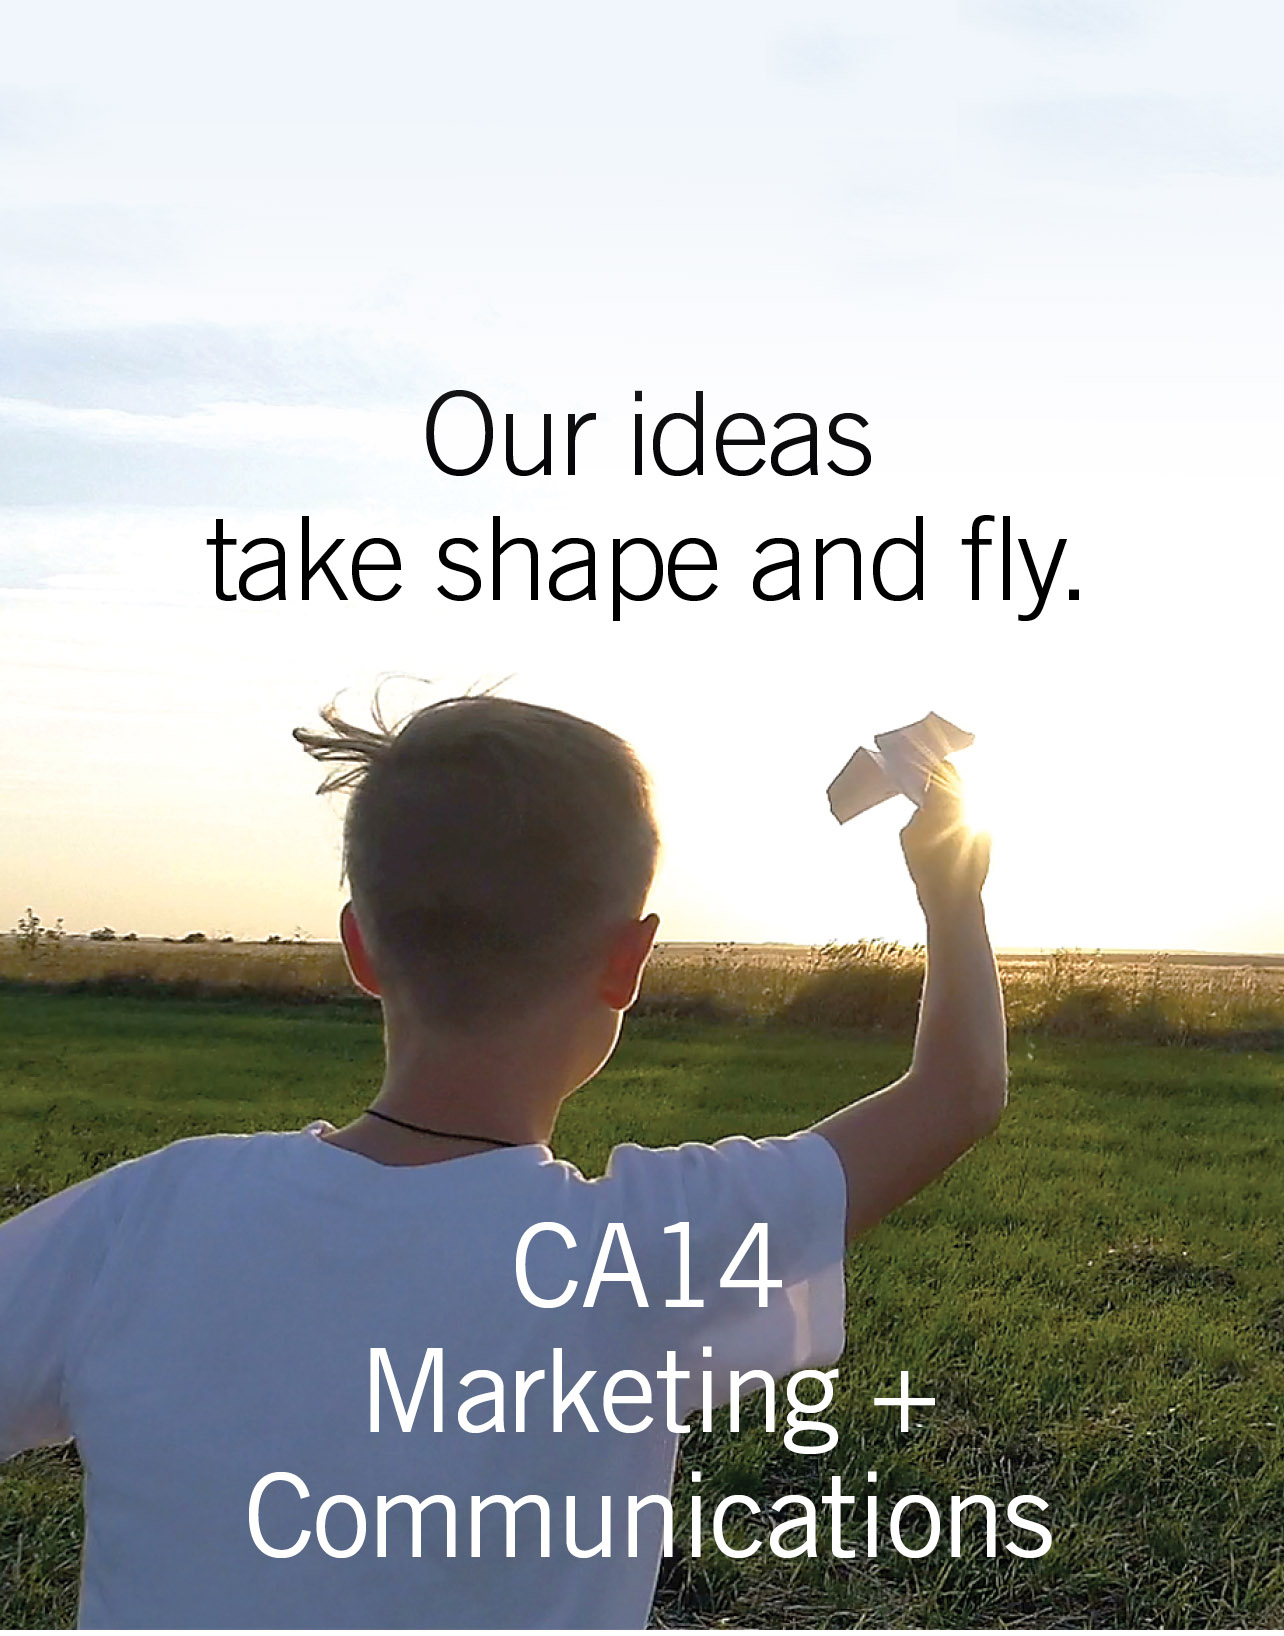 CA14 Marketing and Communications. Our ideas take shape and fly.